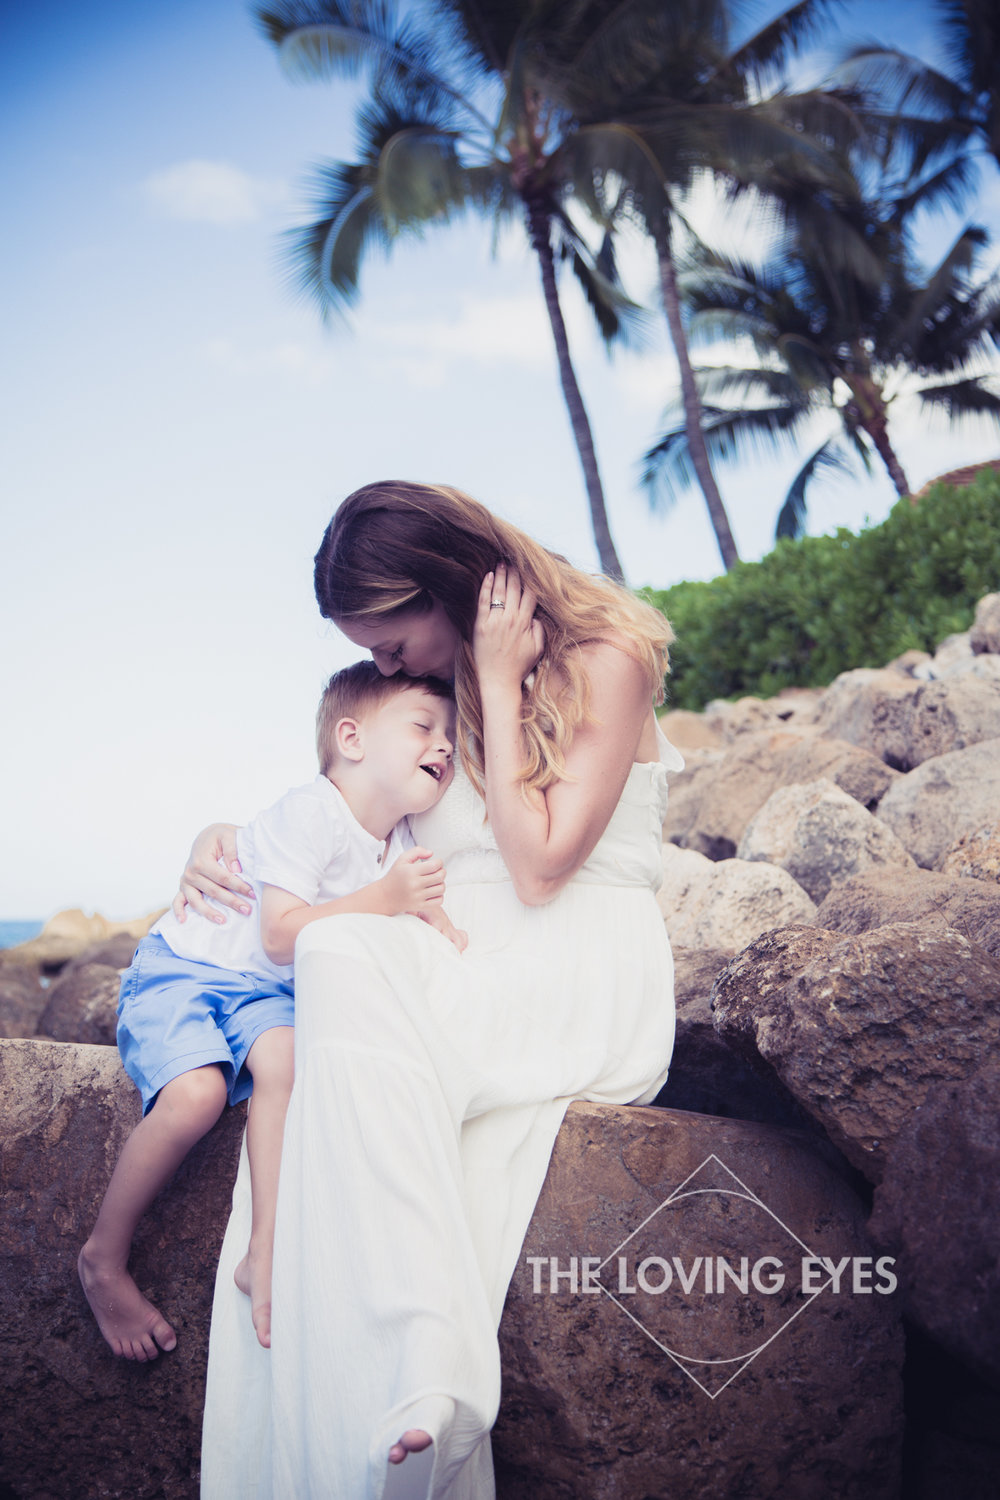 Mother and son photo while on vacation on the beach in Hawaii